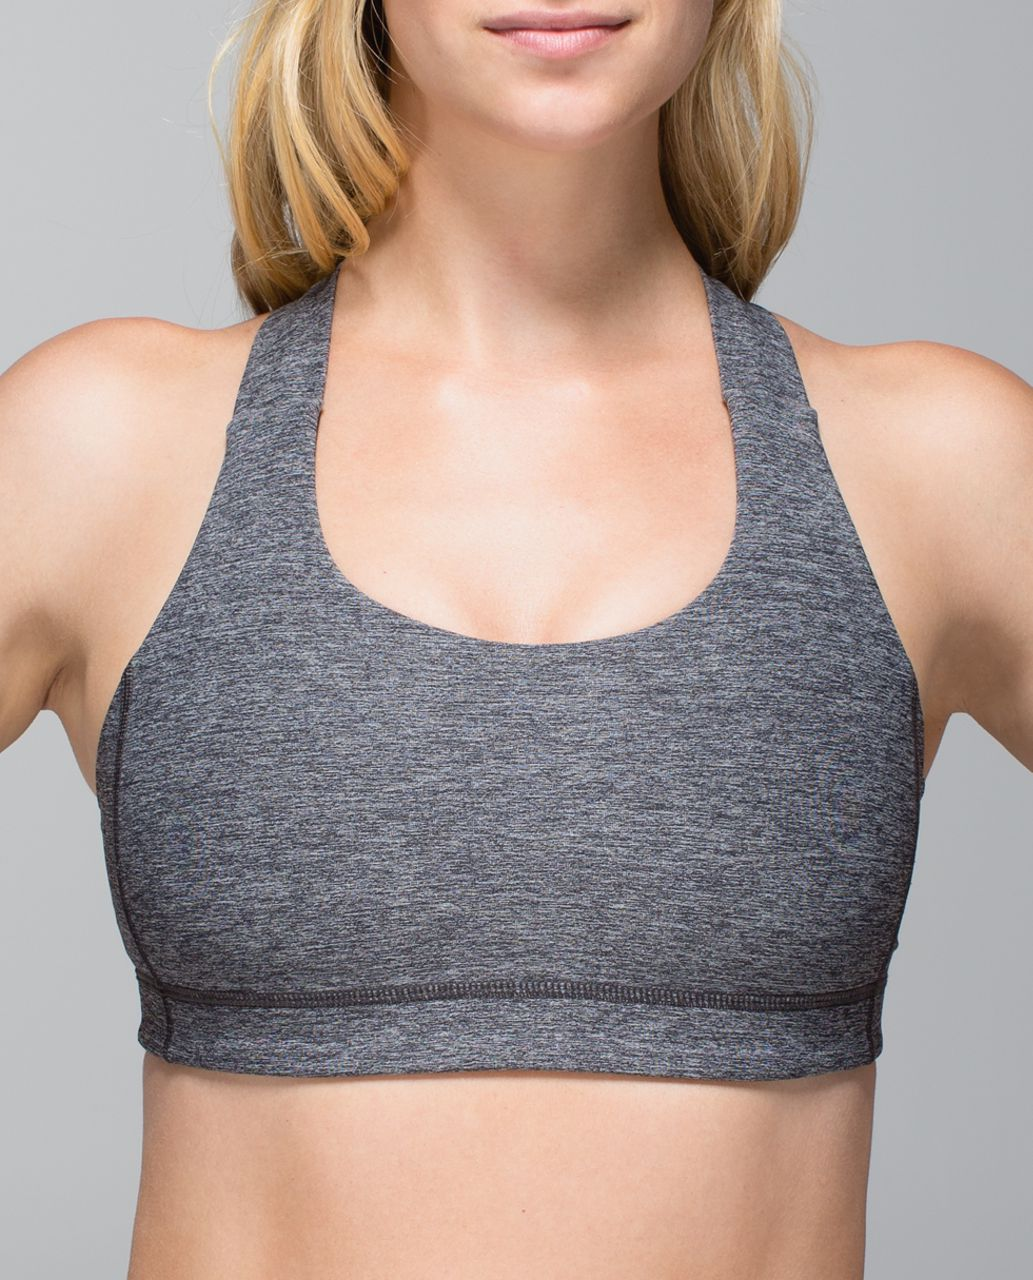 c24a675838 Lululemon All Sport Bra - Heathered Black - lulu fanatics